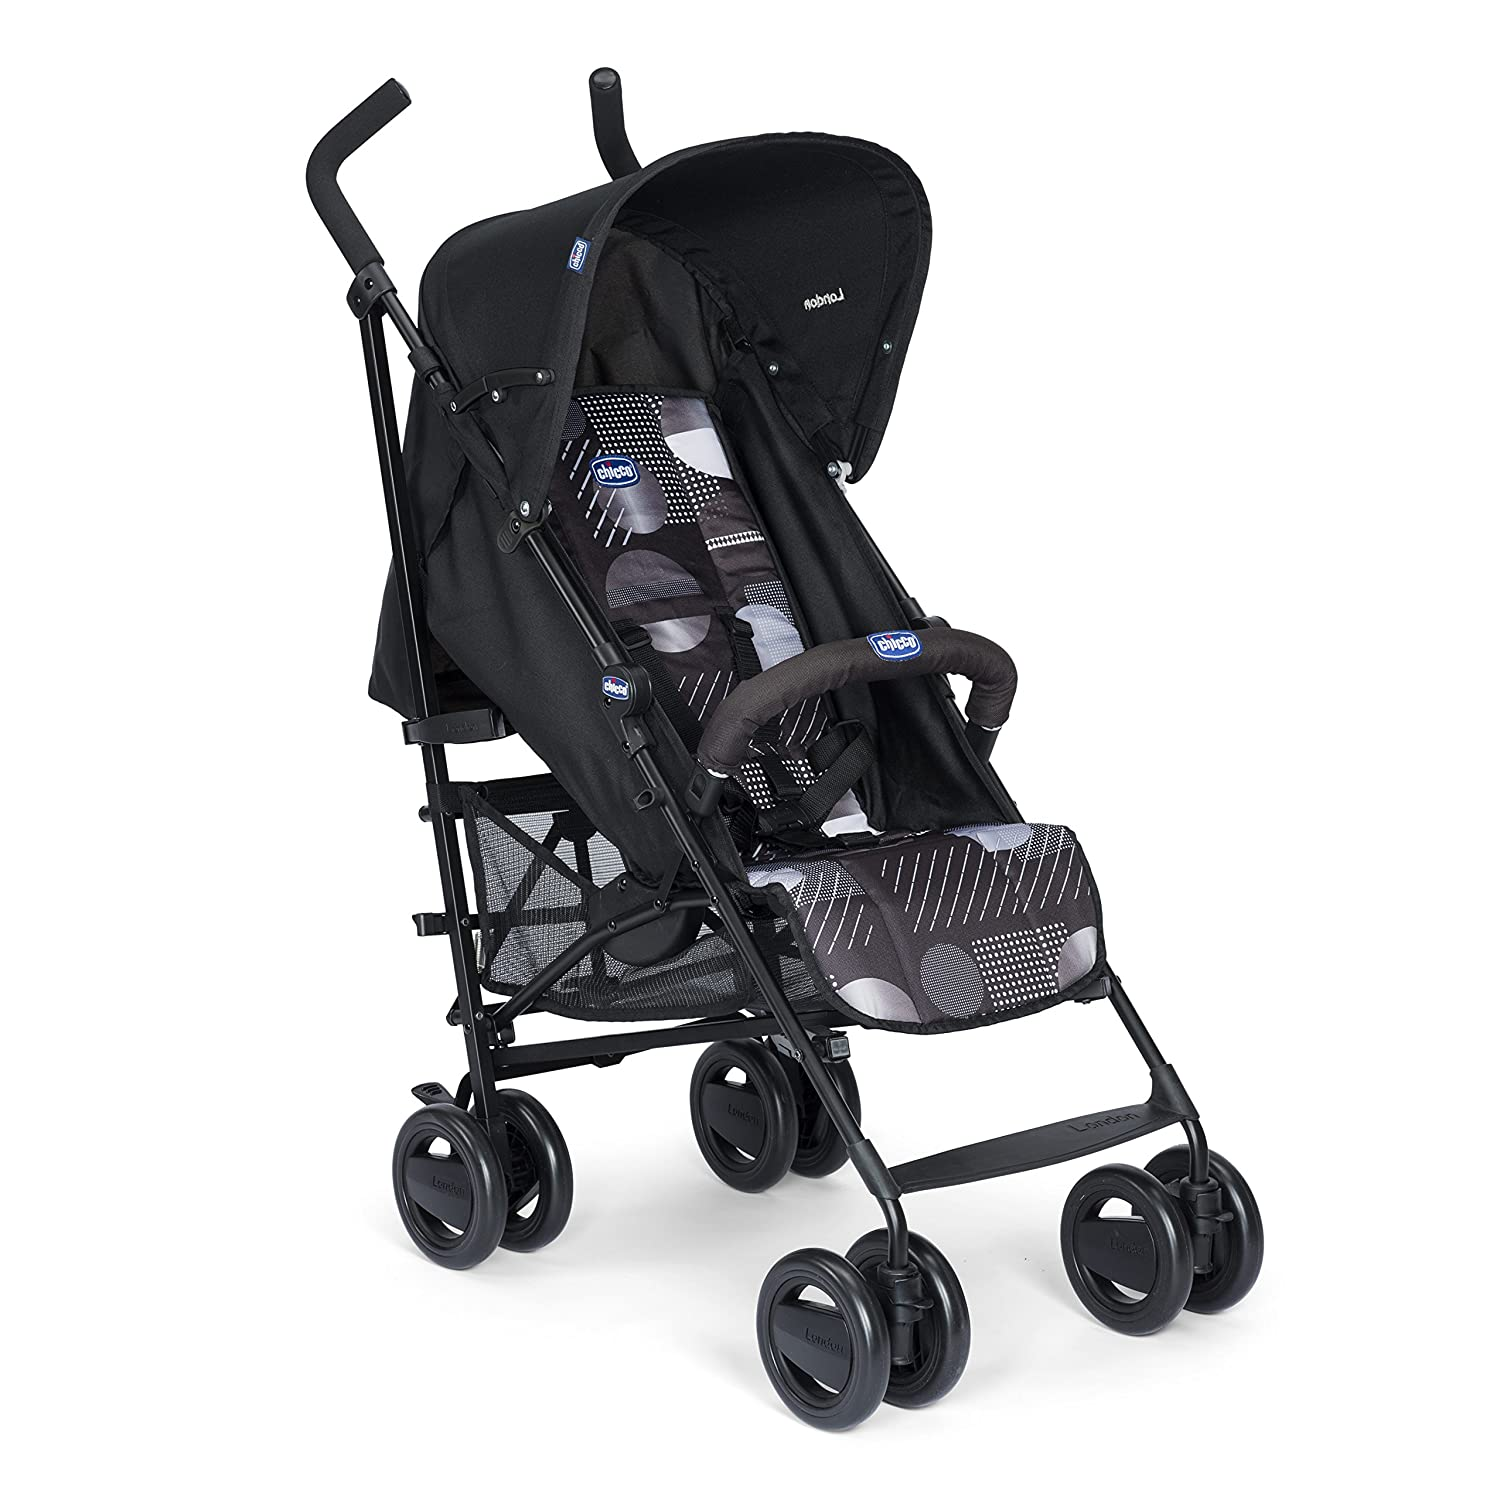 Chicco London Silla de paseo  kg compacta y manejable color negro